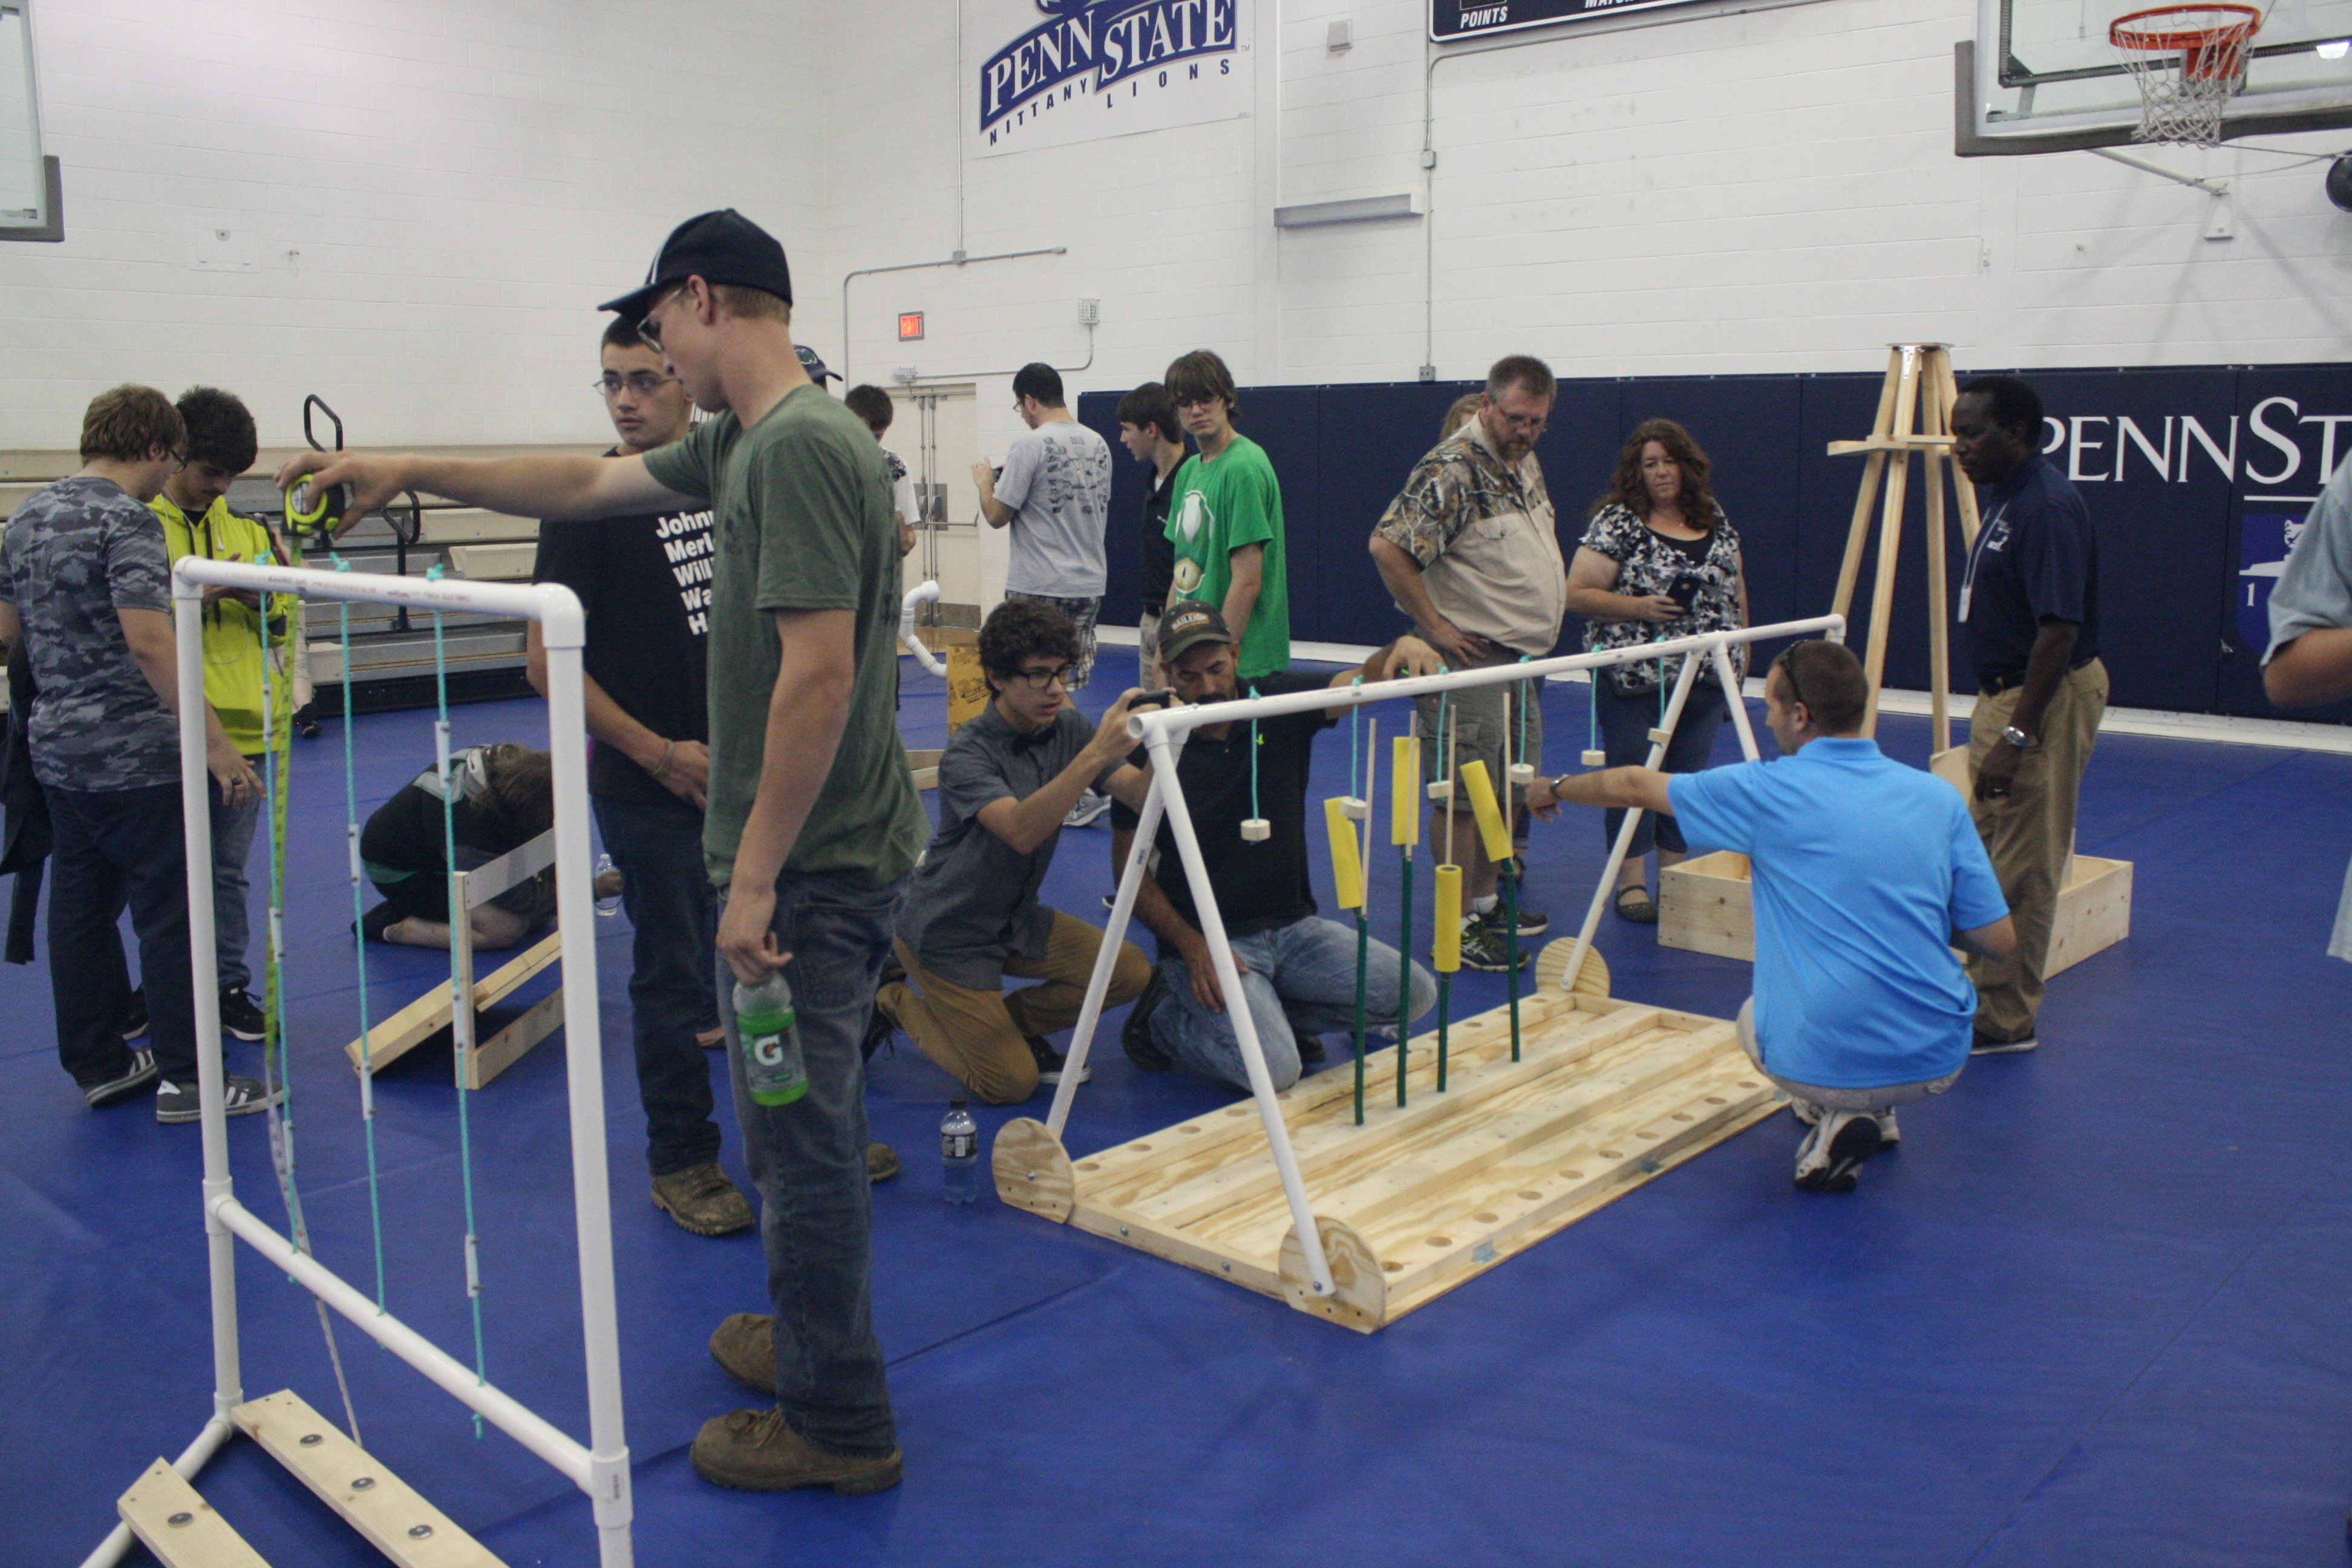 Students had the opportunity to examine part of the course they'll operate their robots through during the BEST Kick-off event in the campus gymnasium. (Provided photo)